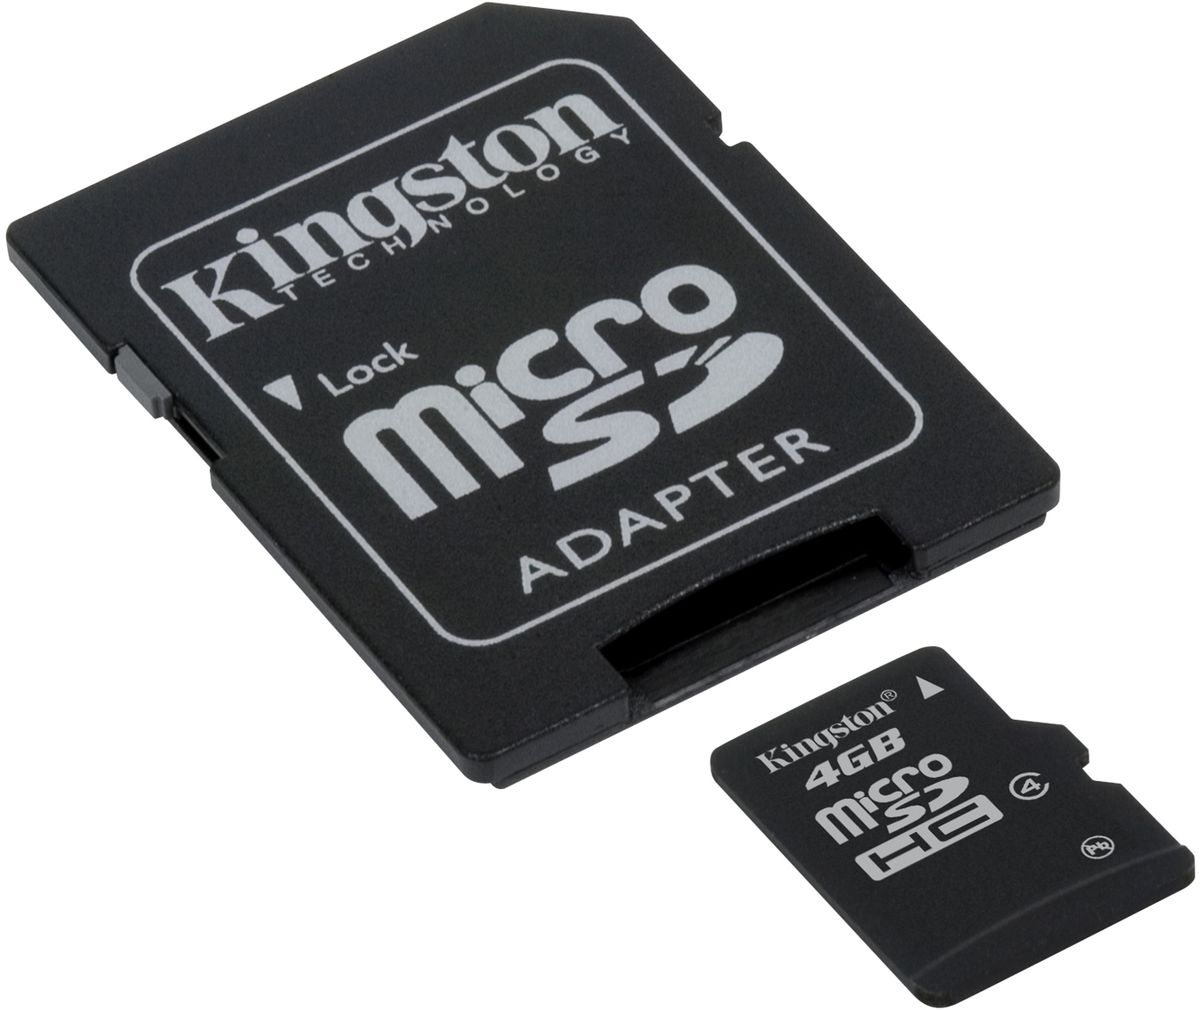 Kingston microSDHC Class 4 4GB карта памяти с адаптером microsdhc kingston 4gb class 4 sdc4 4gbsp